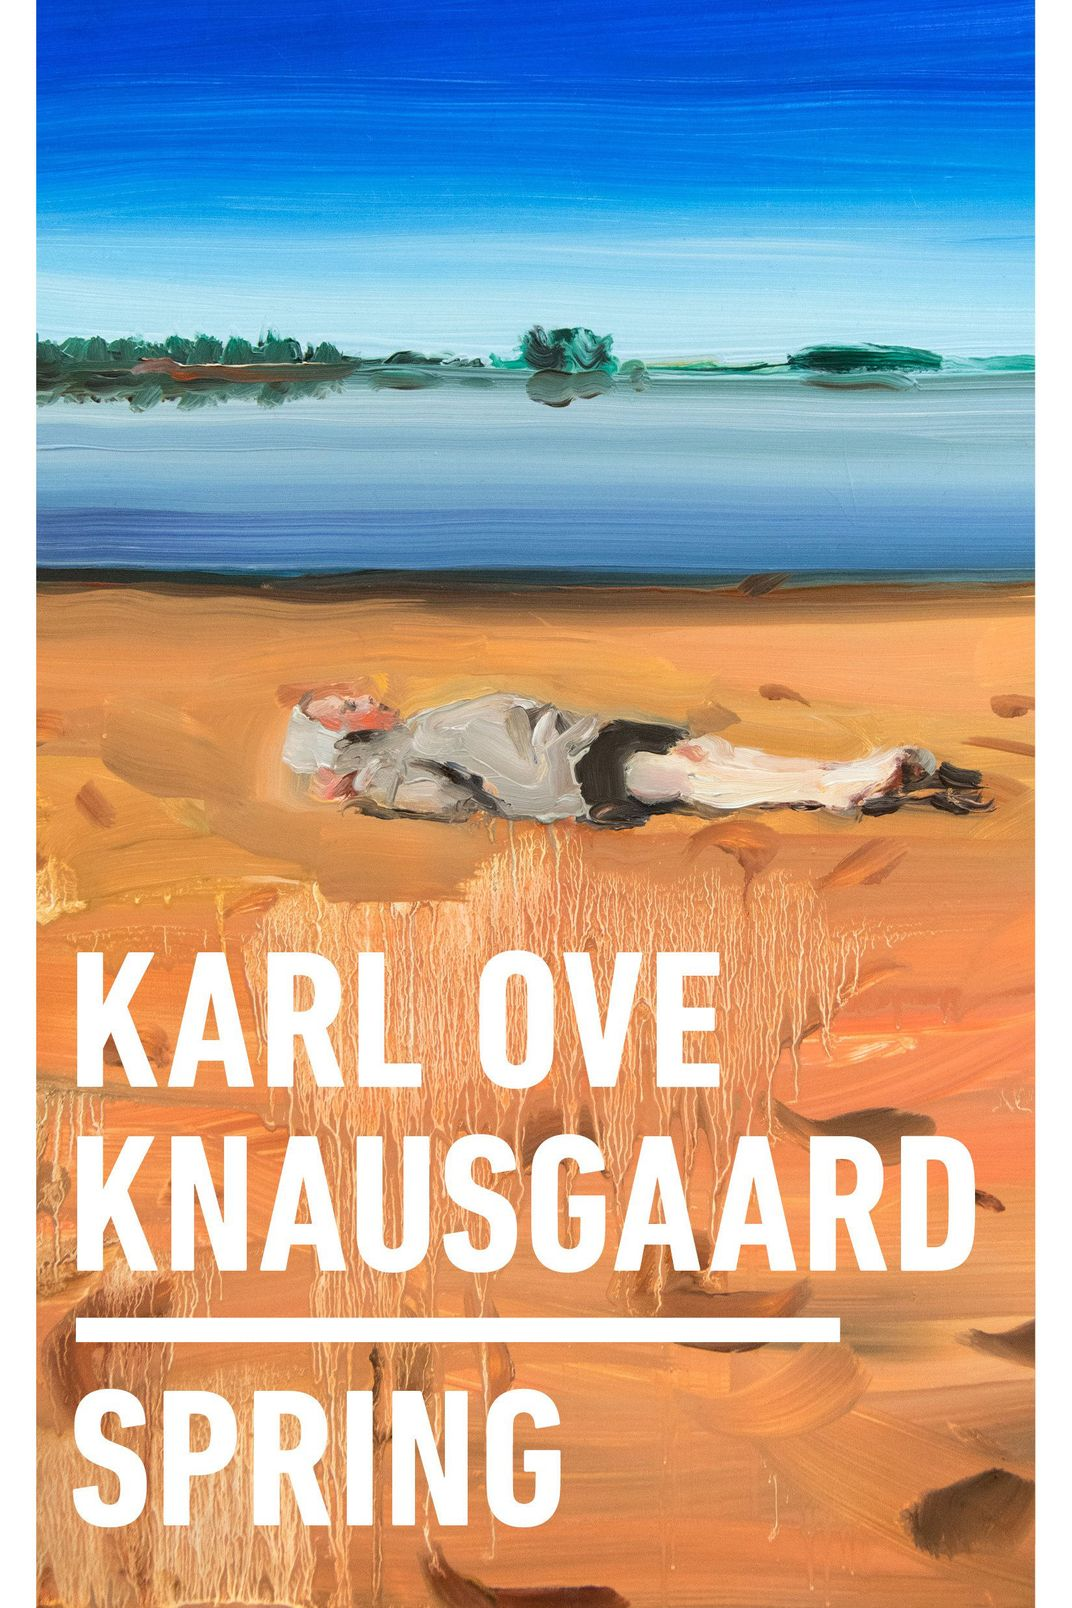 """Spring,"" by Karl Ove Knausgaard, trans. by Ingvild Burkey (Penguin Press, May 8)"